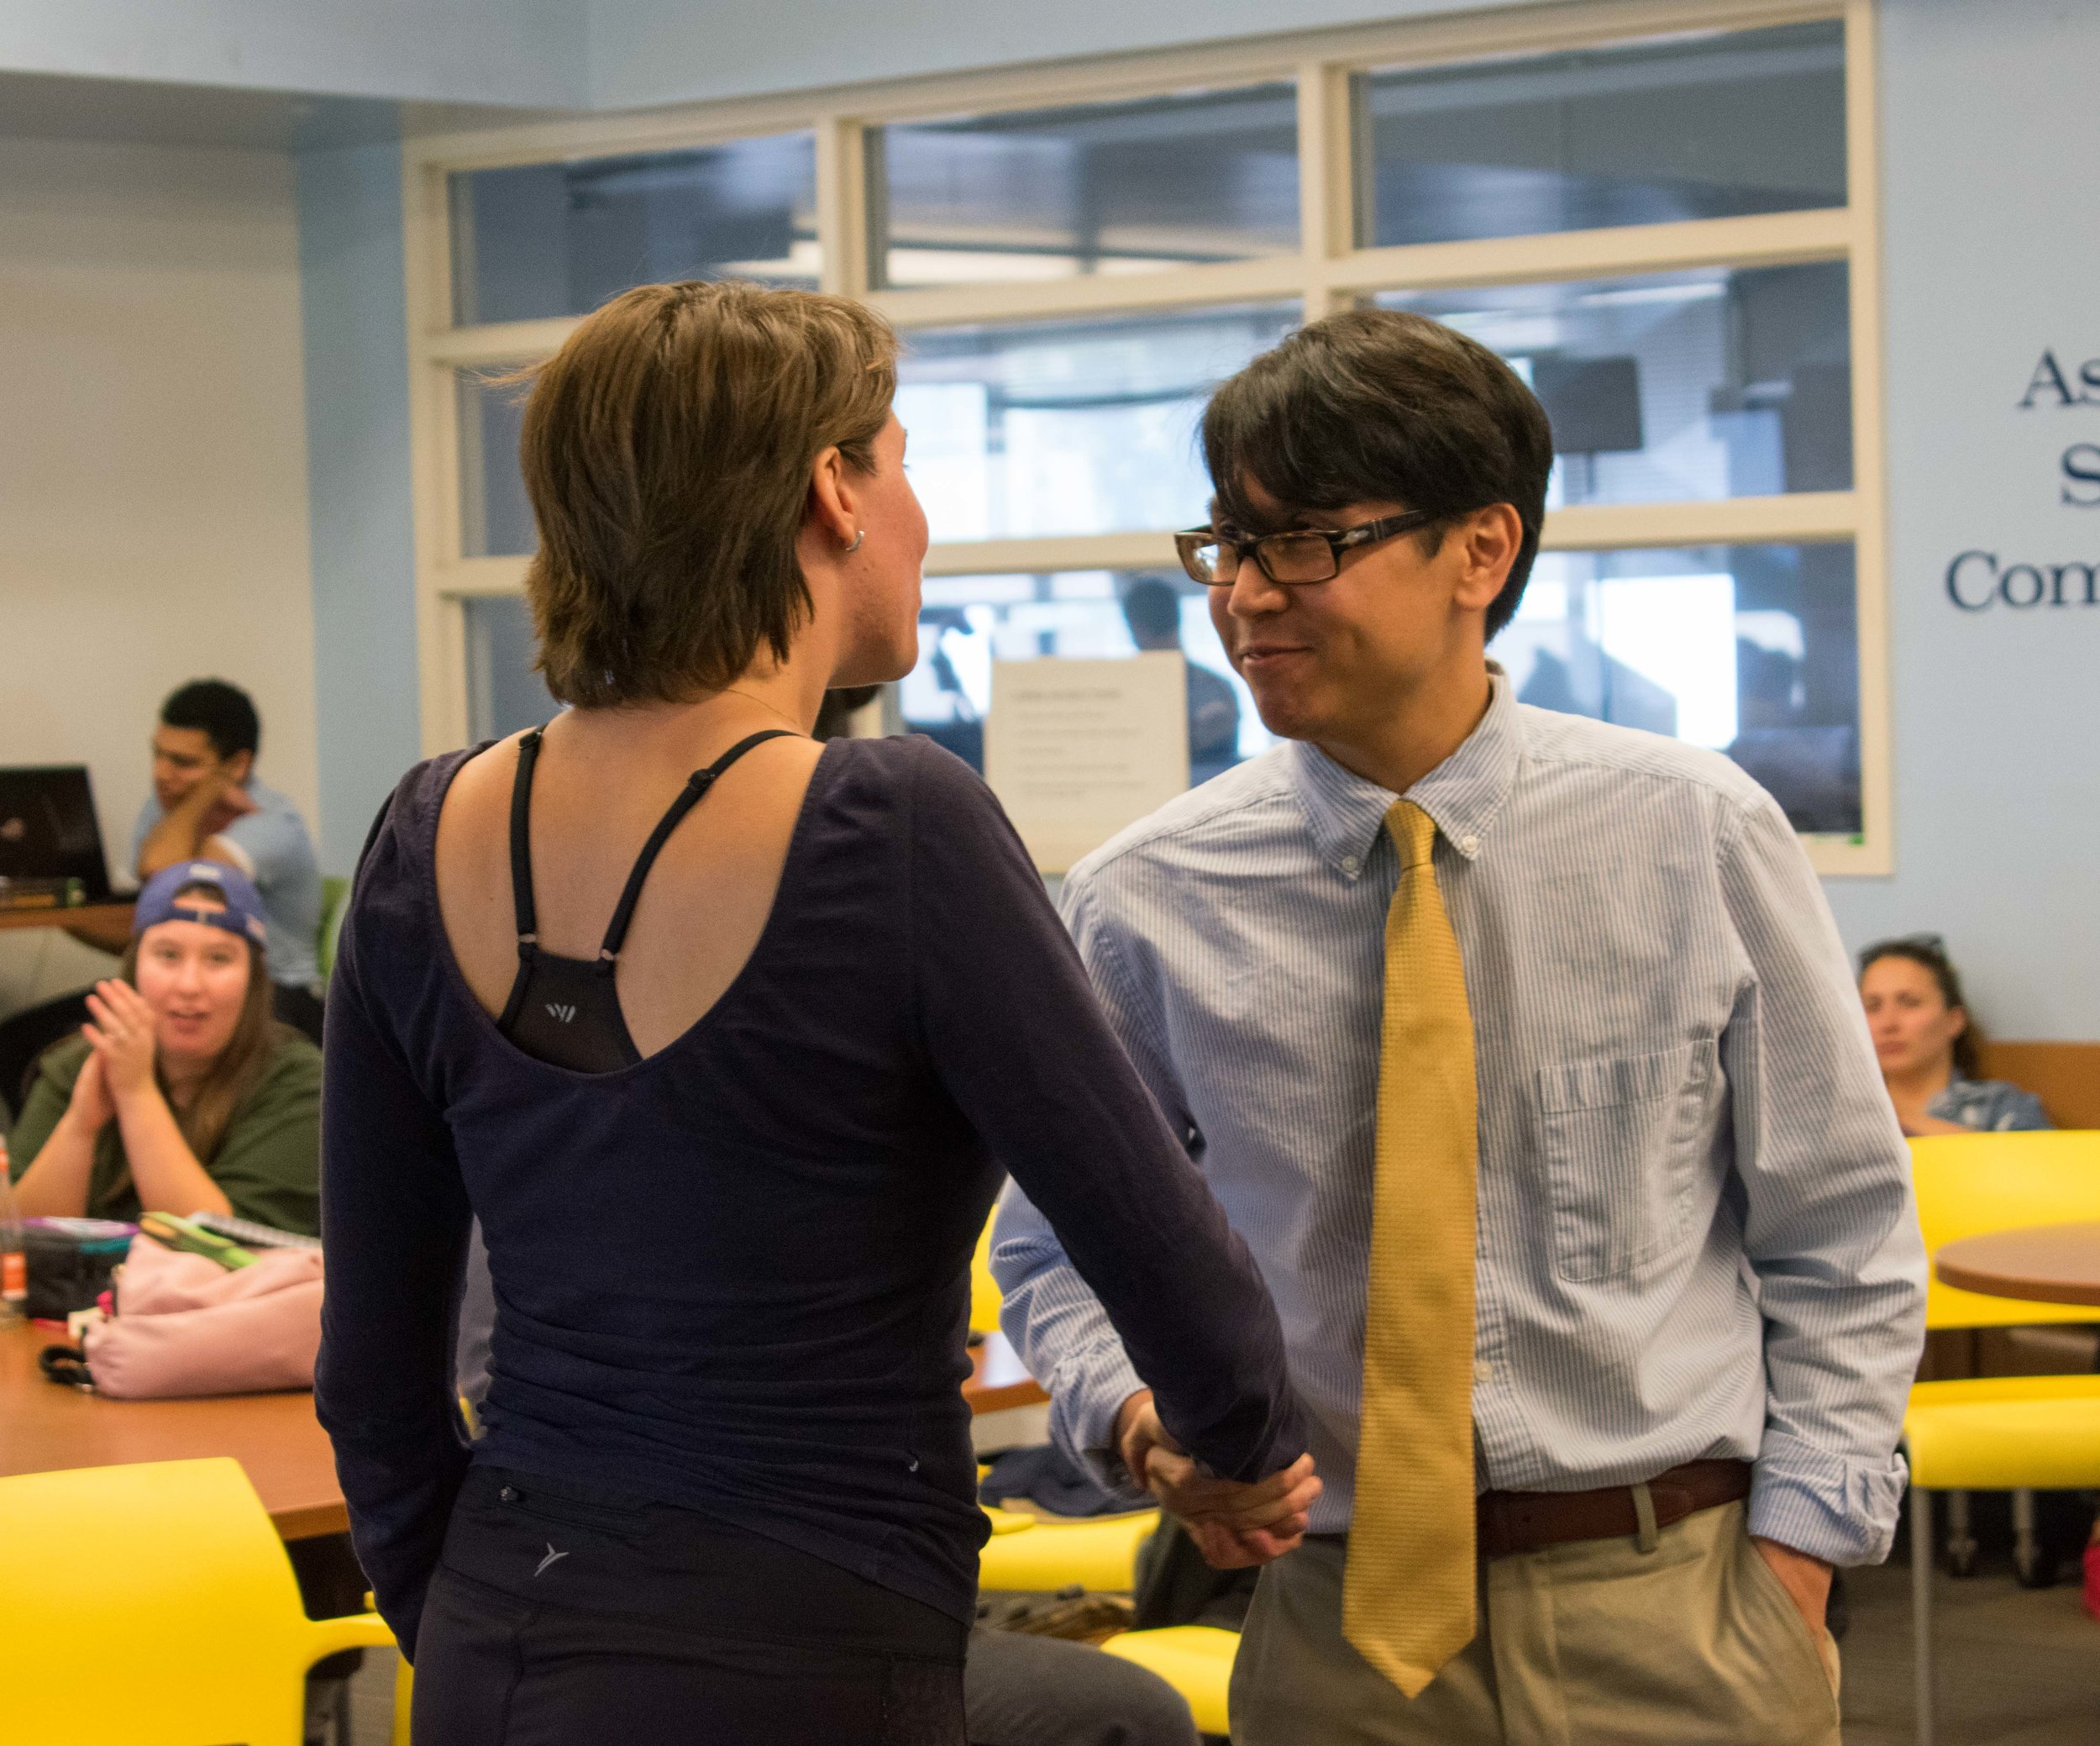 Ana Laura Paiva shakes the hand of Arthur Sanchez moments after Paiva is voted to be the director of student assistance at Santa Monica College in Santa Monica, California. (Photo by Ethan Lauren)